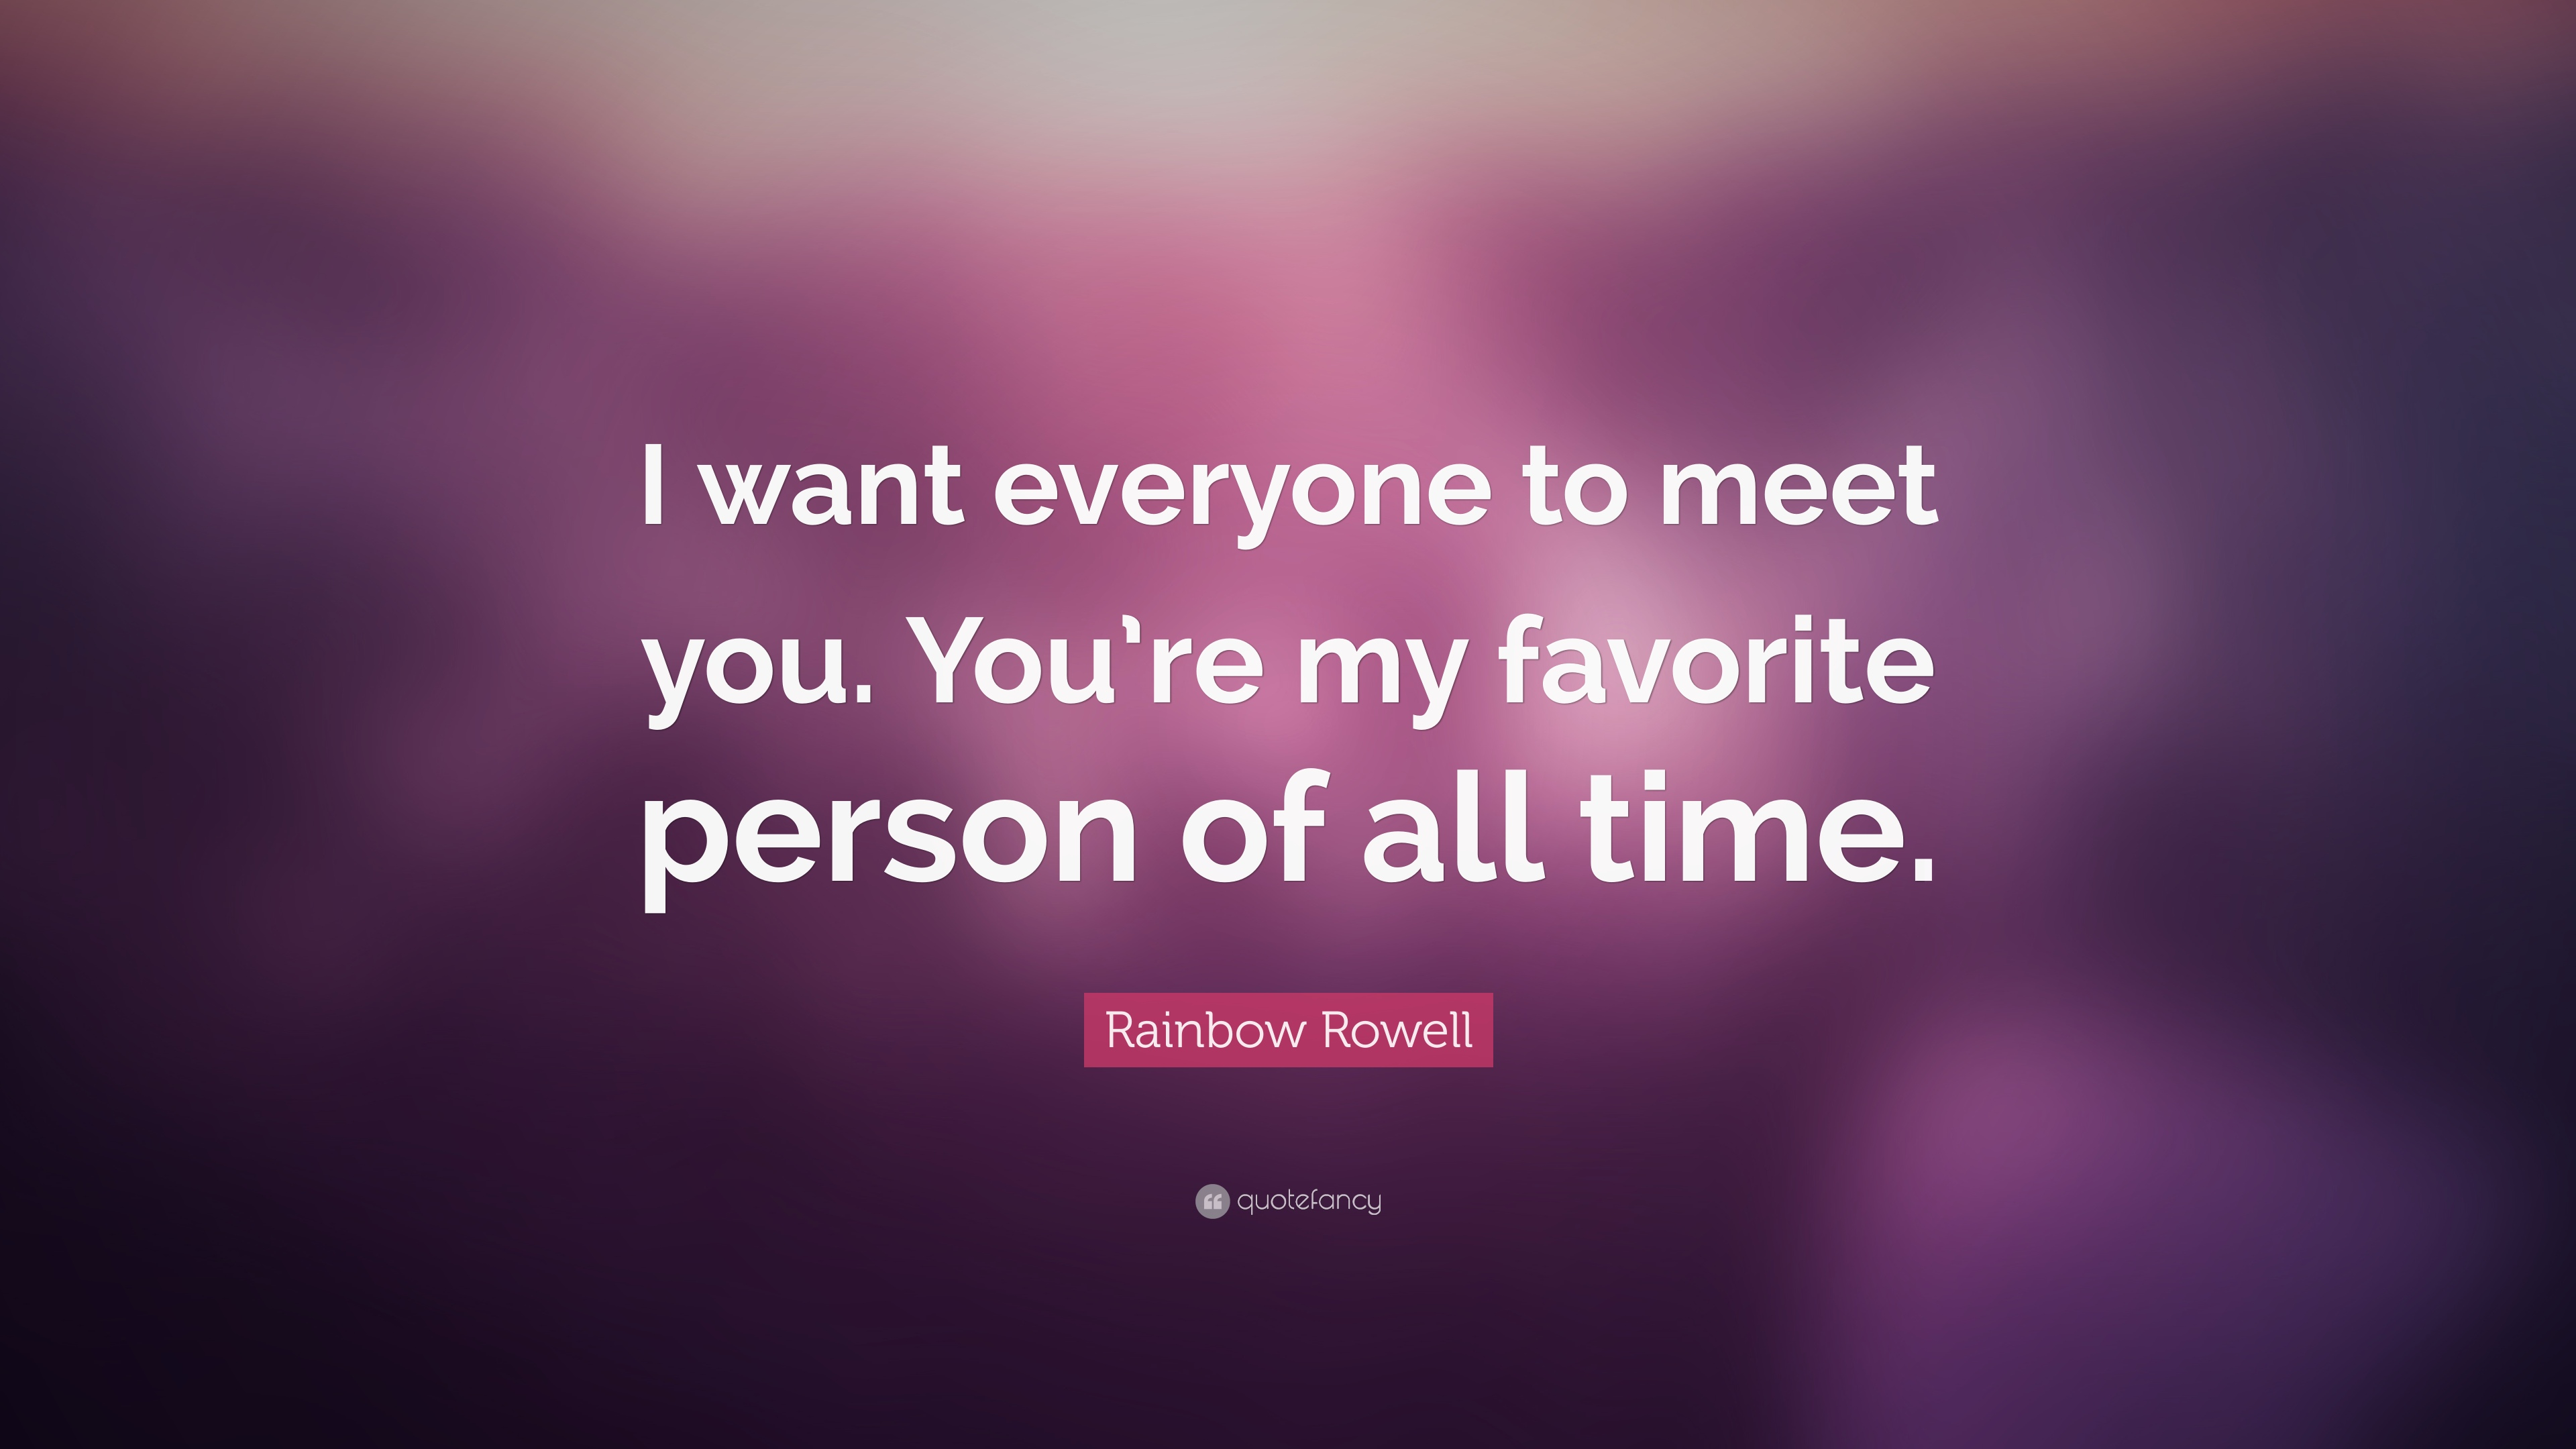 Rainbow Rowell Quote I Want Everyone To Meet You Youre My